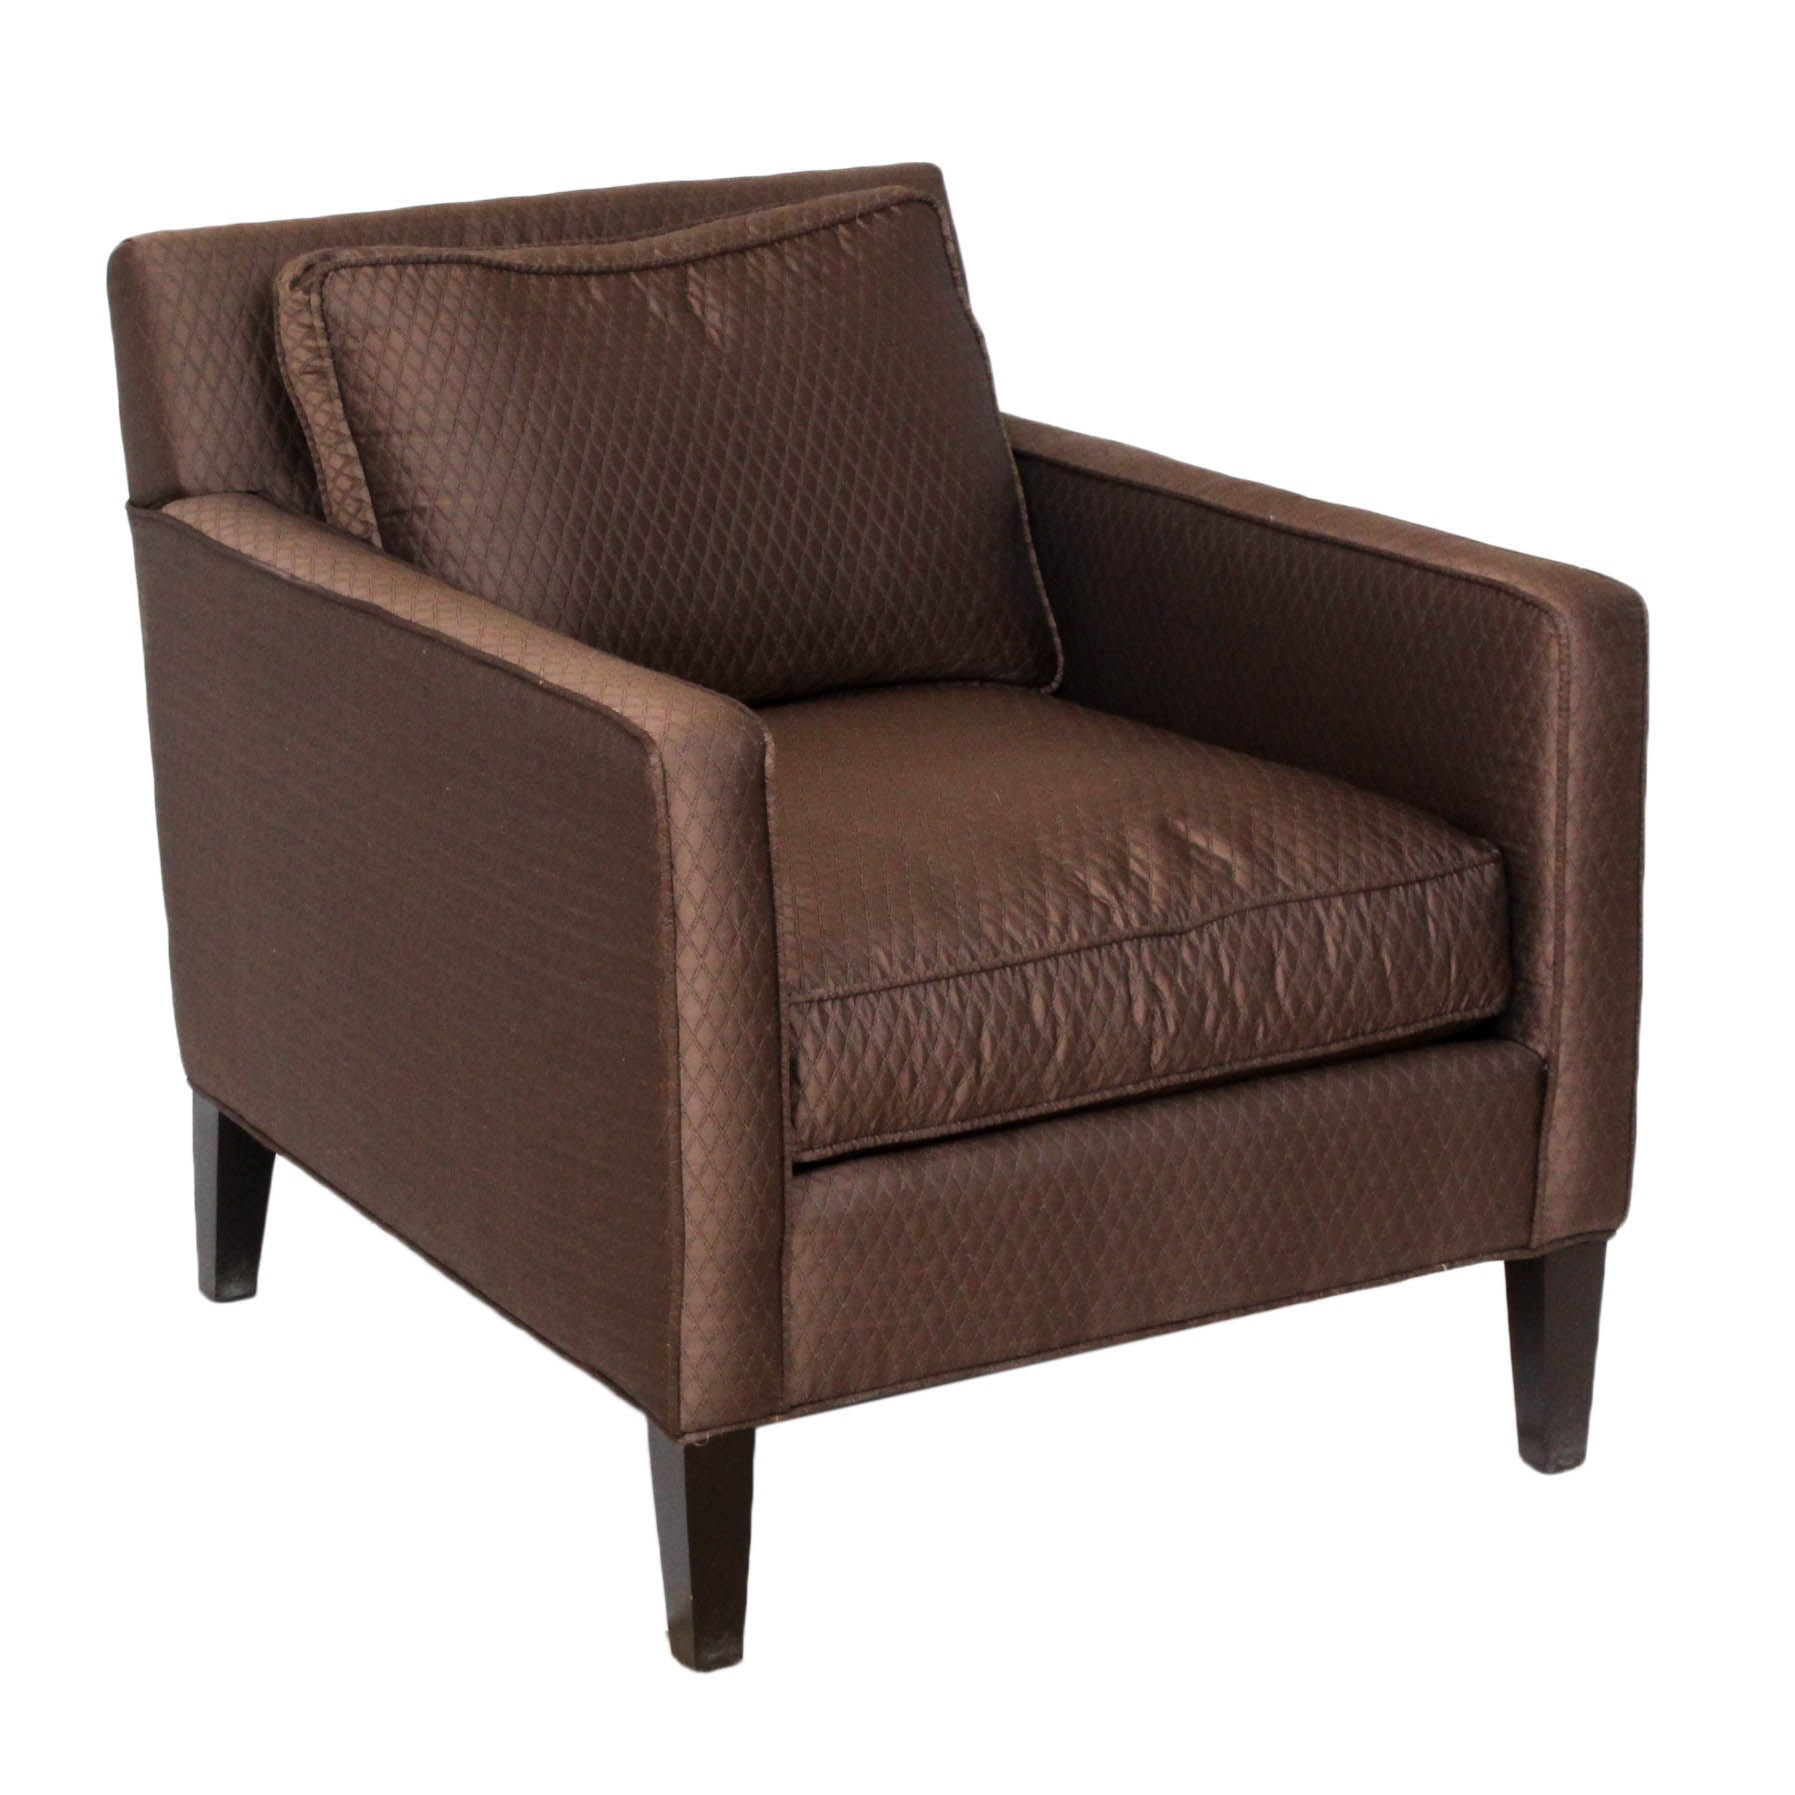 Contemporary Upholstered Club Chair by Bernhardt